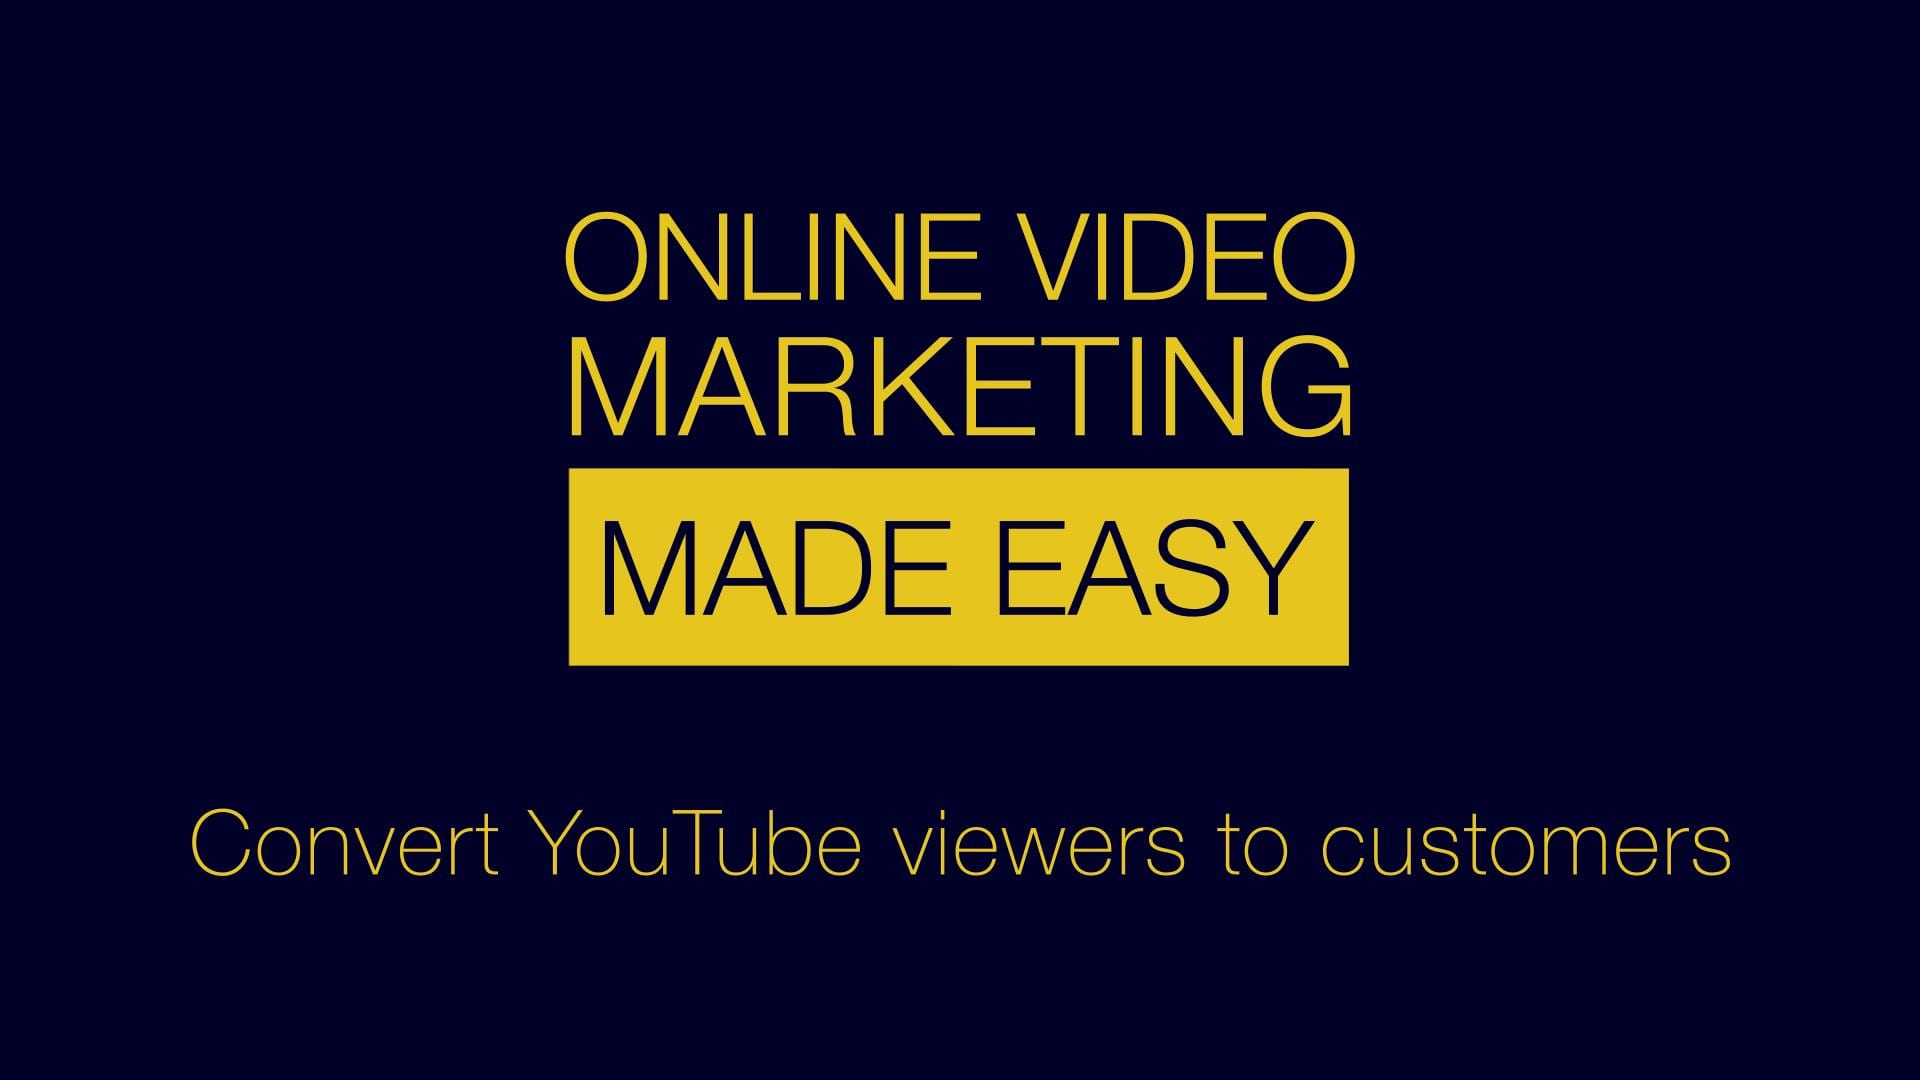 60 Second Online Video Marketing Advice: Using YouTube